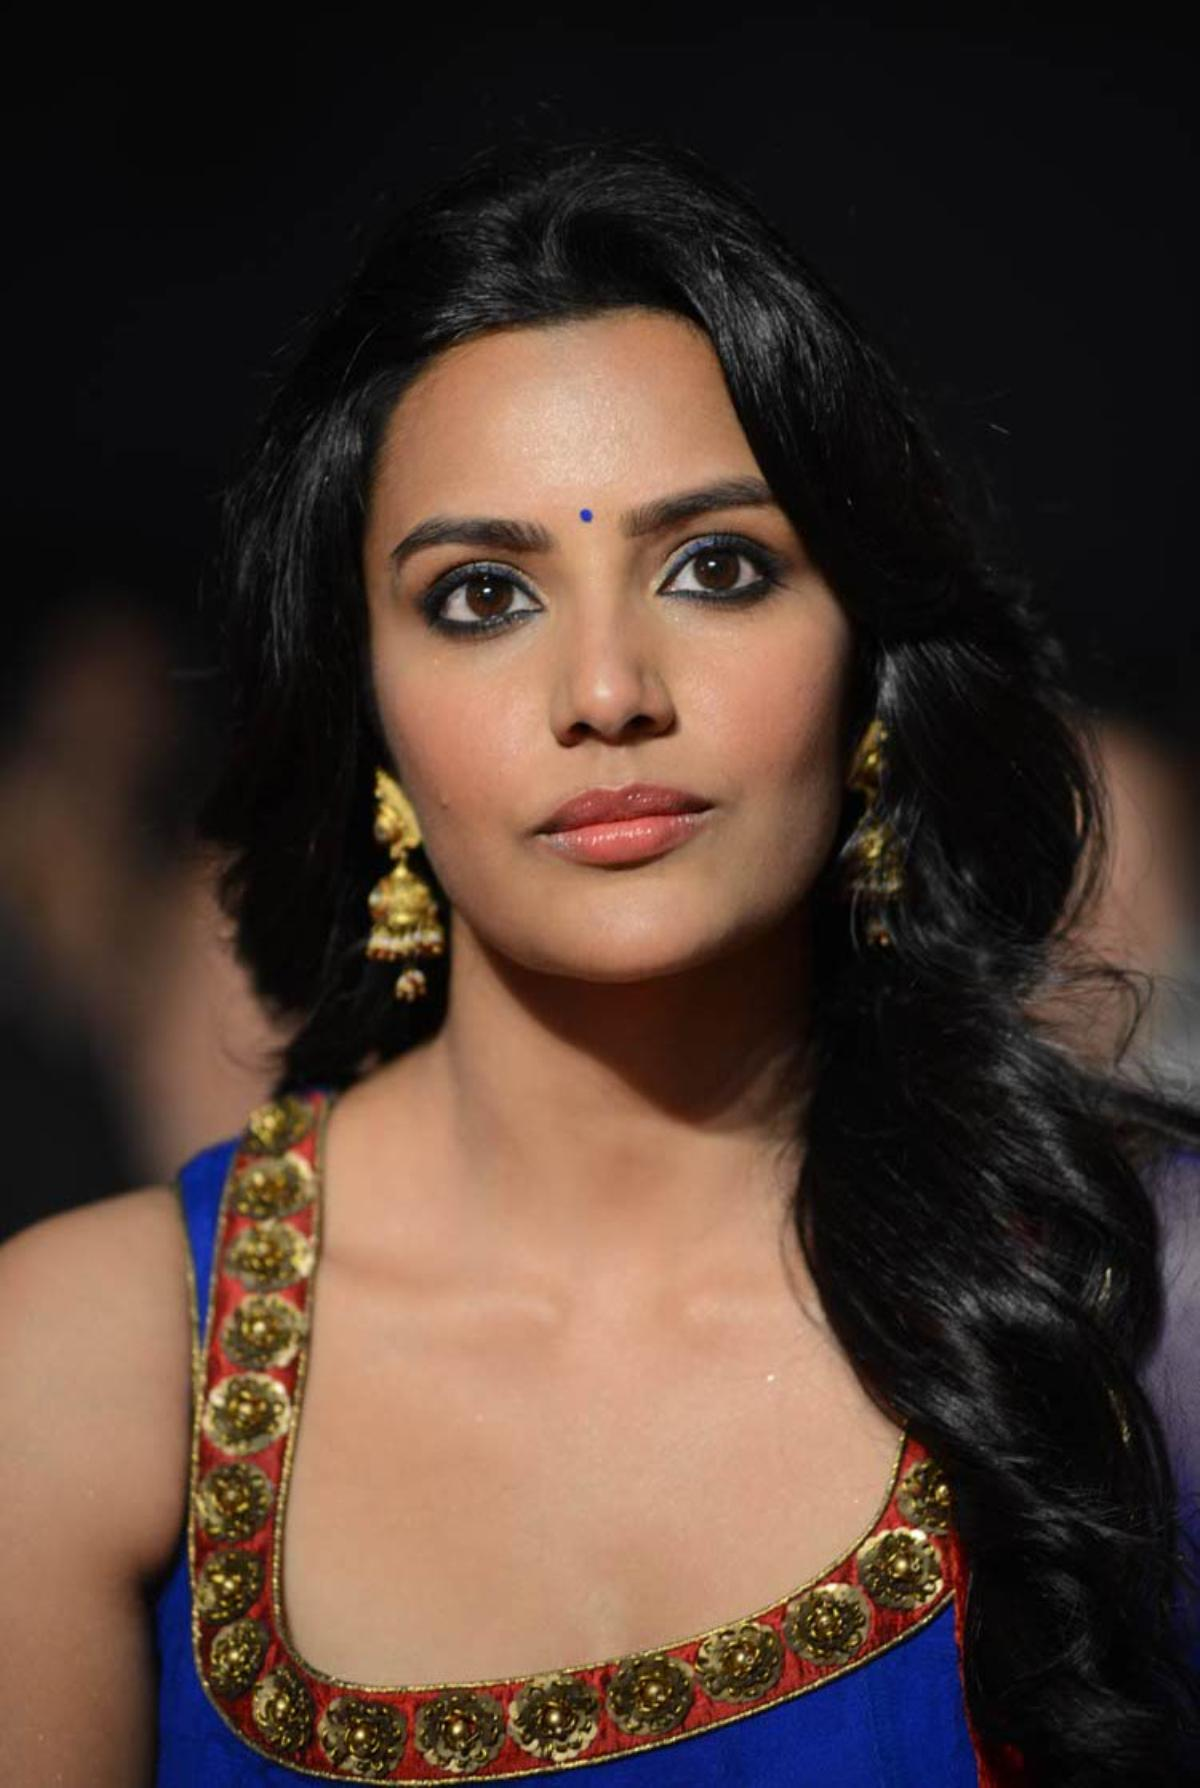 Discussion on this topic: Ava Gaudet, priya-anand/